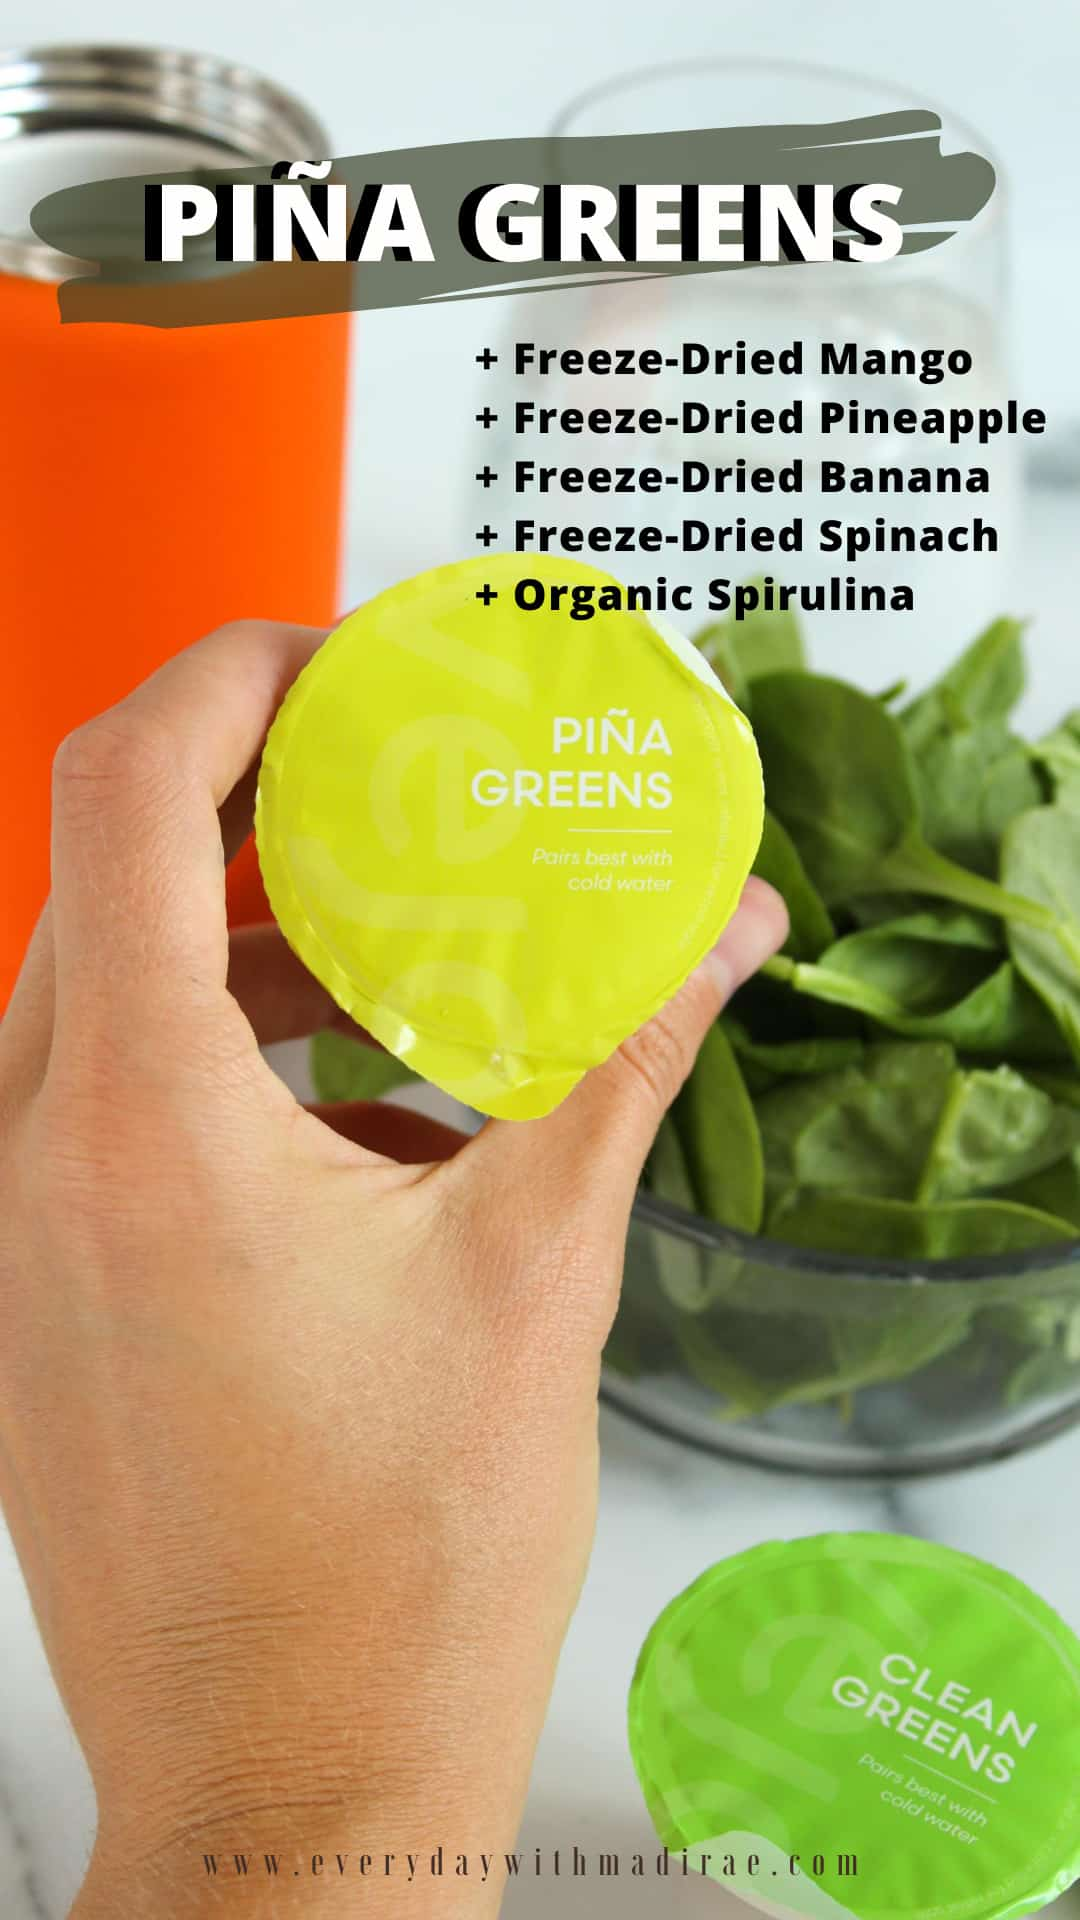 Sharing my honest Vejo review complete with biodegradable smoothie pods, a convenient portable blender, amazing taste, & good nutrition!